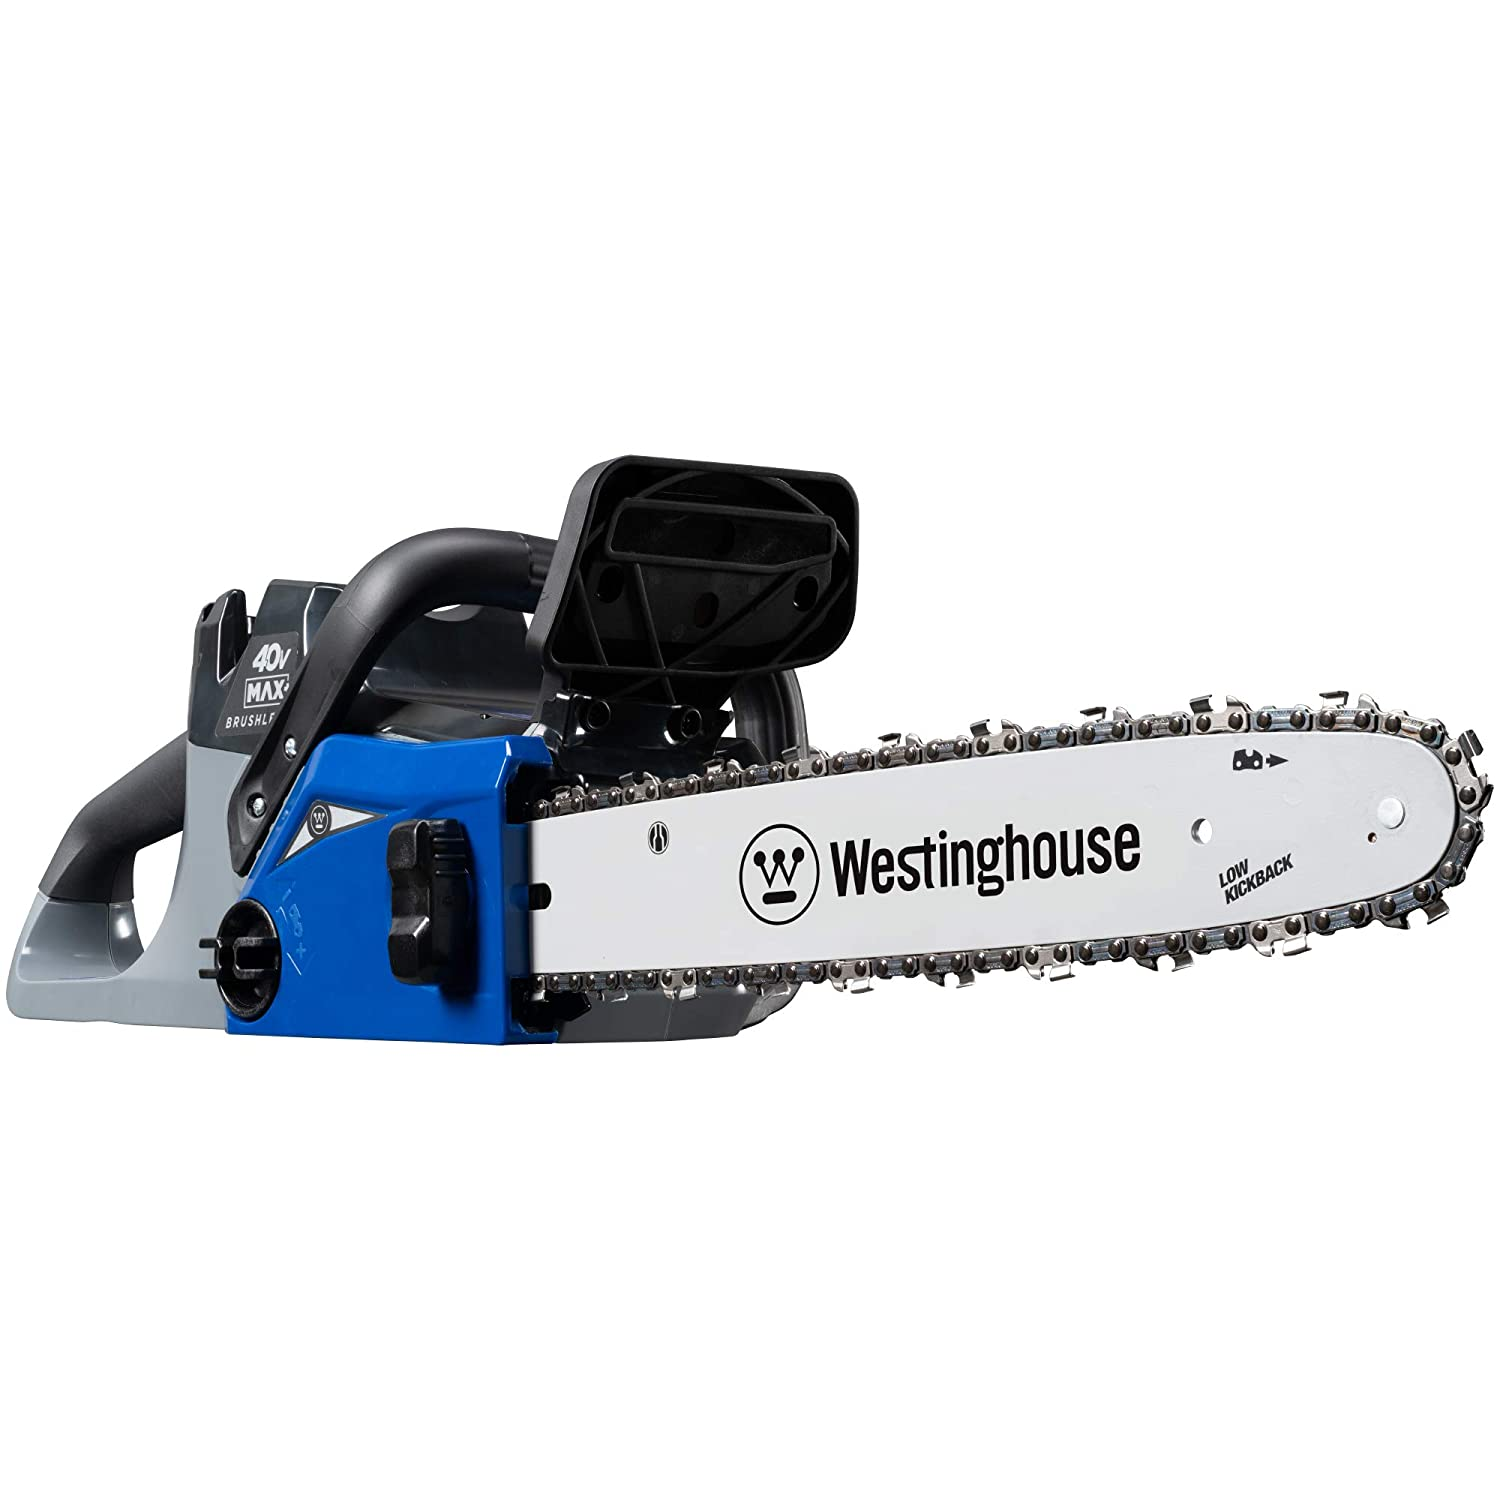 Westinghouse 40V Cordless Chainsaw, Tool Only Battery and Charger Not Included